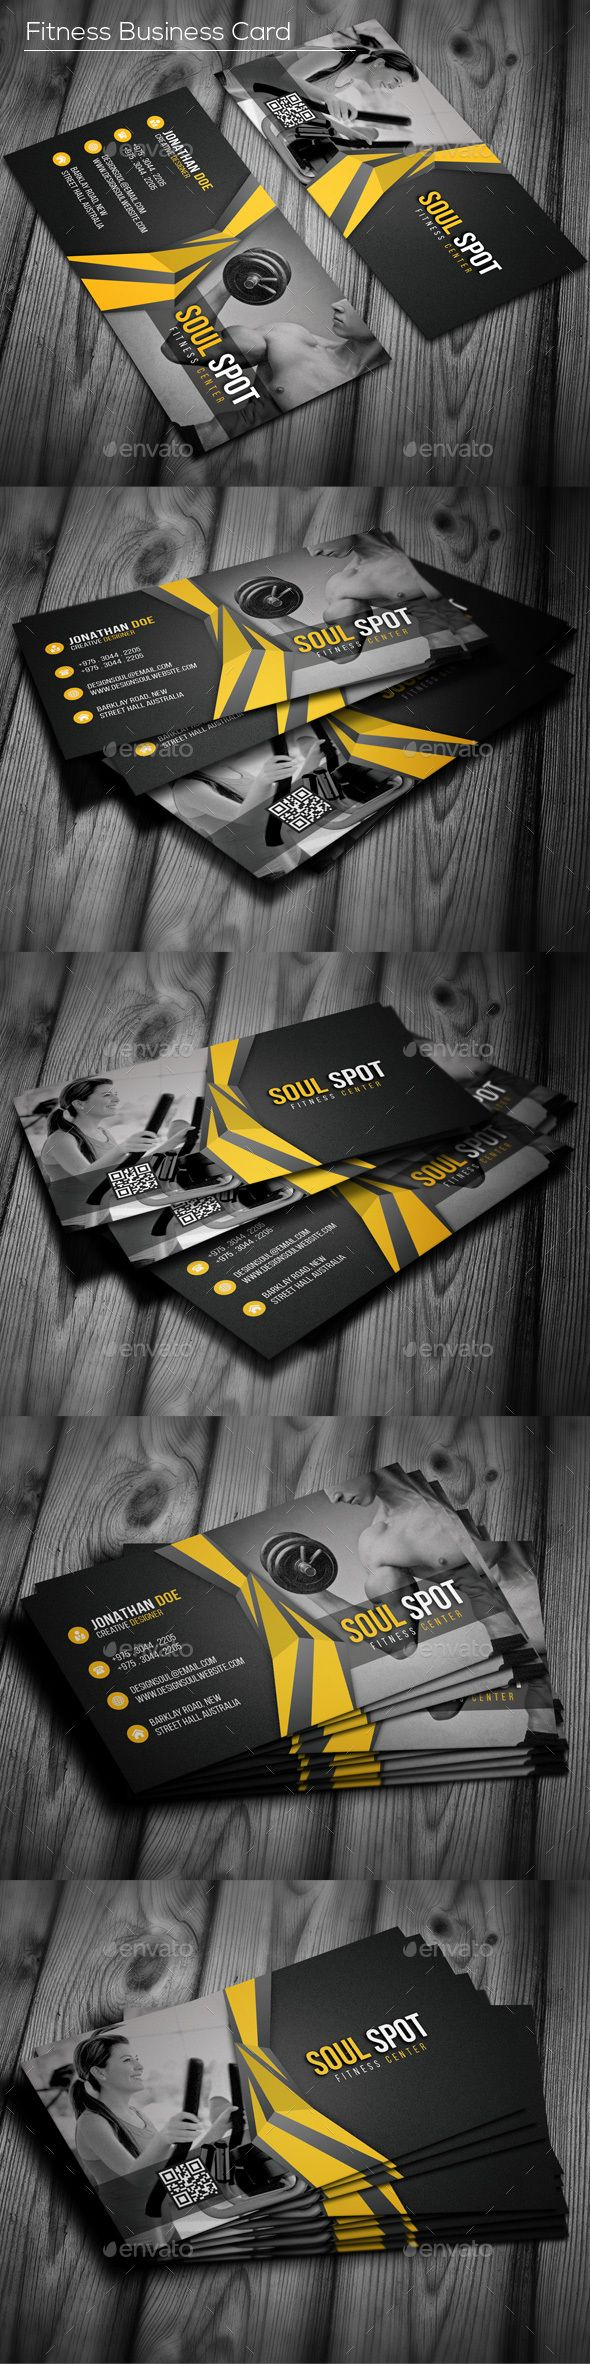 Fitness business card business cards card templates and business fitness business card industry specific business cards download here httpgraphicriveritemfitness business card 16835858srank19refal fatih reheart Choice Image